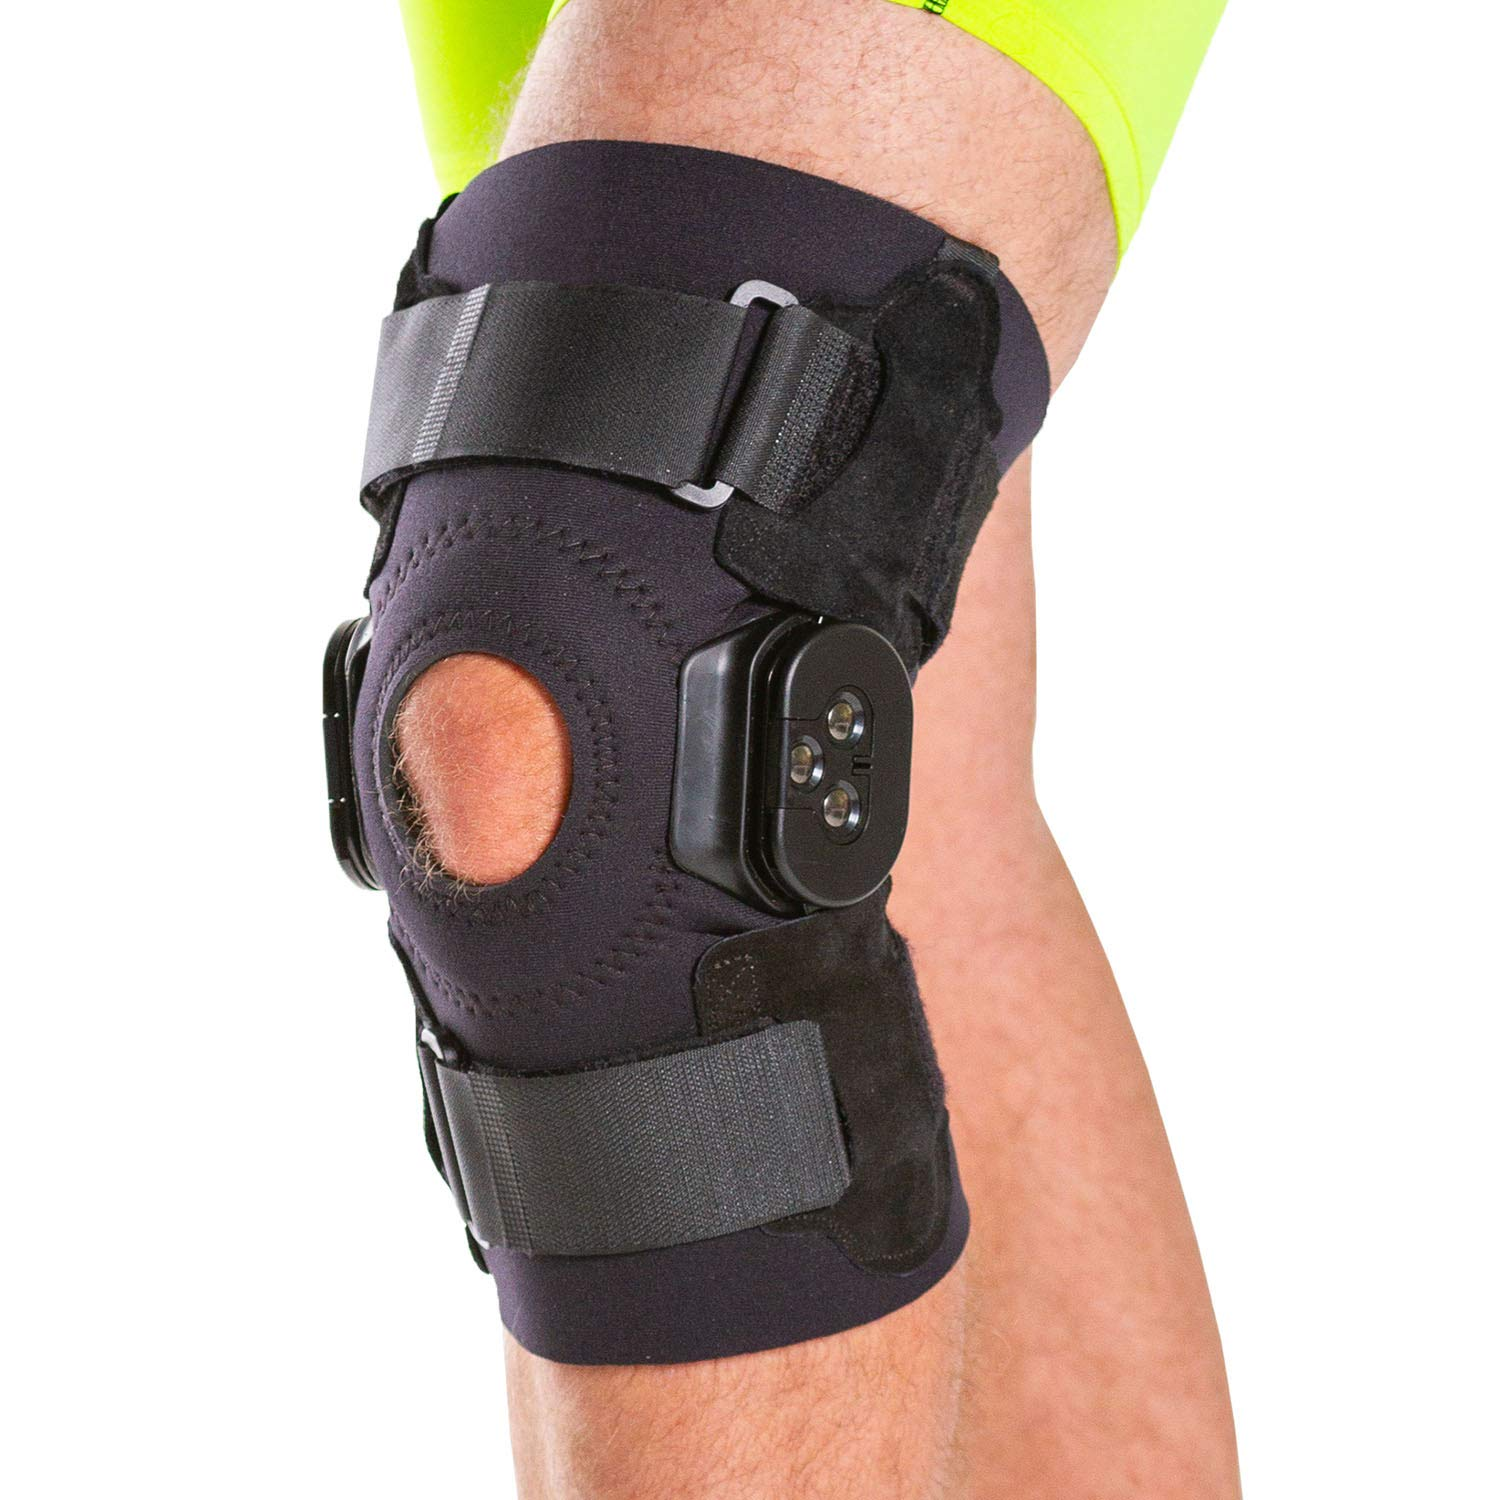 BraceAbility Torn Meniscus ROM Knee Brace | Hinged Post Surgery Support with Flexion / Extension Control for Hyperextension & Locking Treatment, Ligament (PCL / ACL) Tears, Osteoarthritis (M)